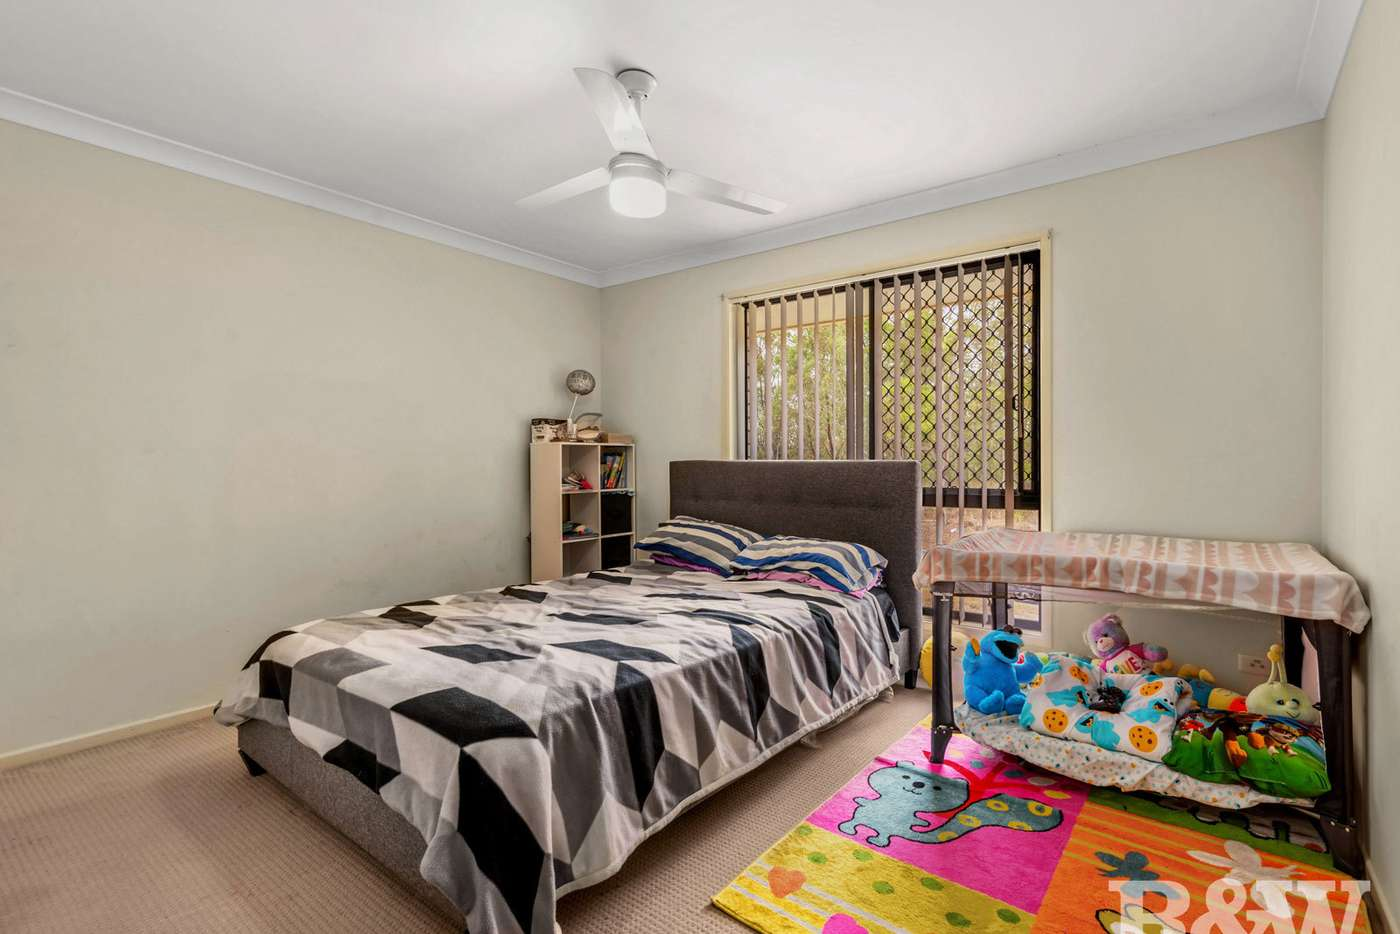 Sixth view of Homely house listing, 14 Zain Street, Heritage Park QLD 4118